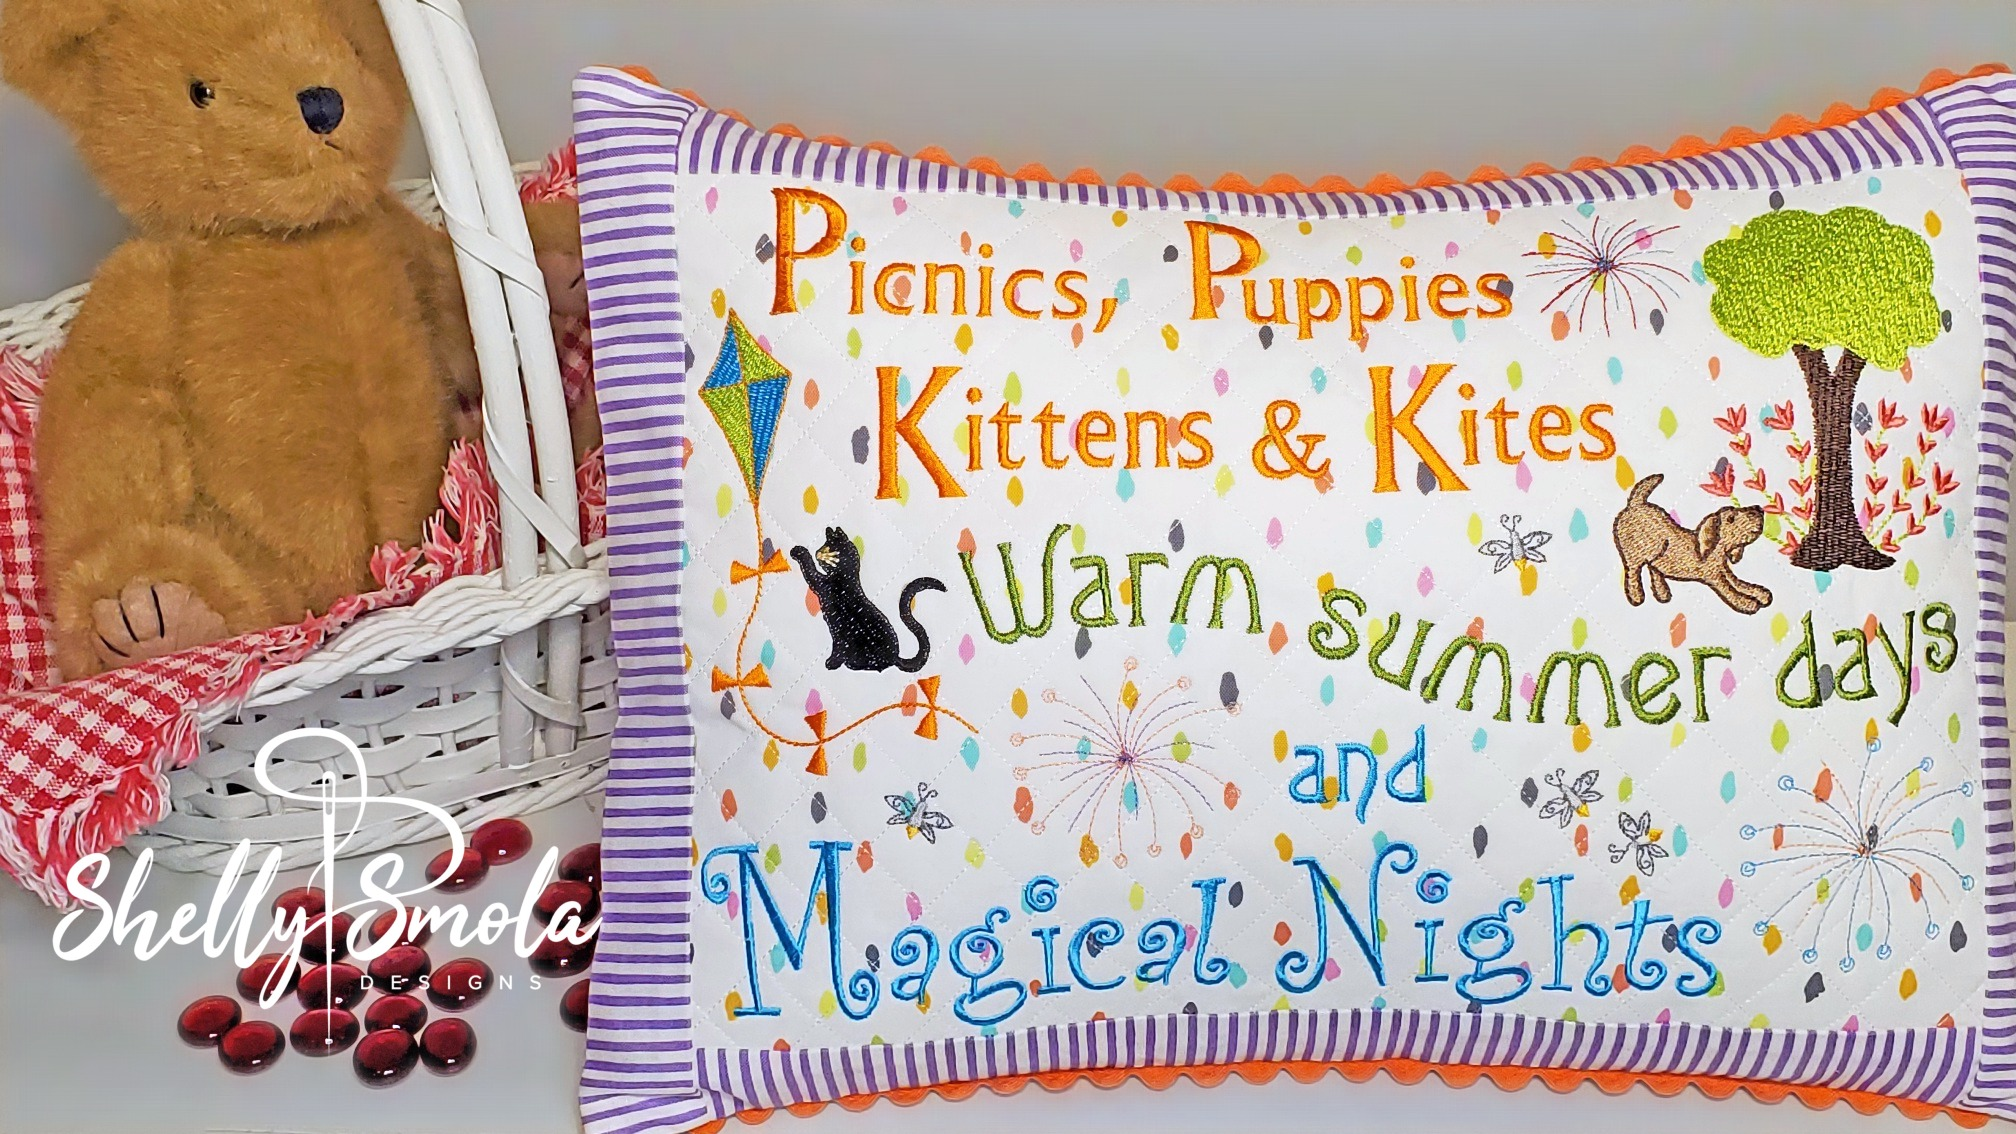 Magical Nights Pillow by Shelly Smola